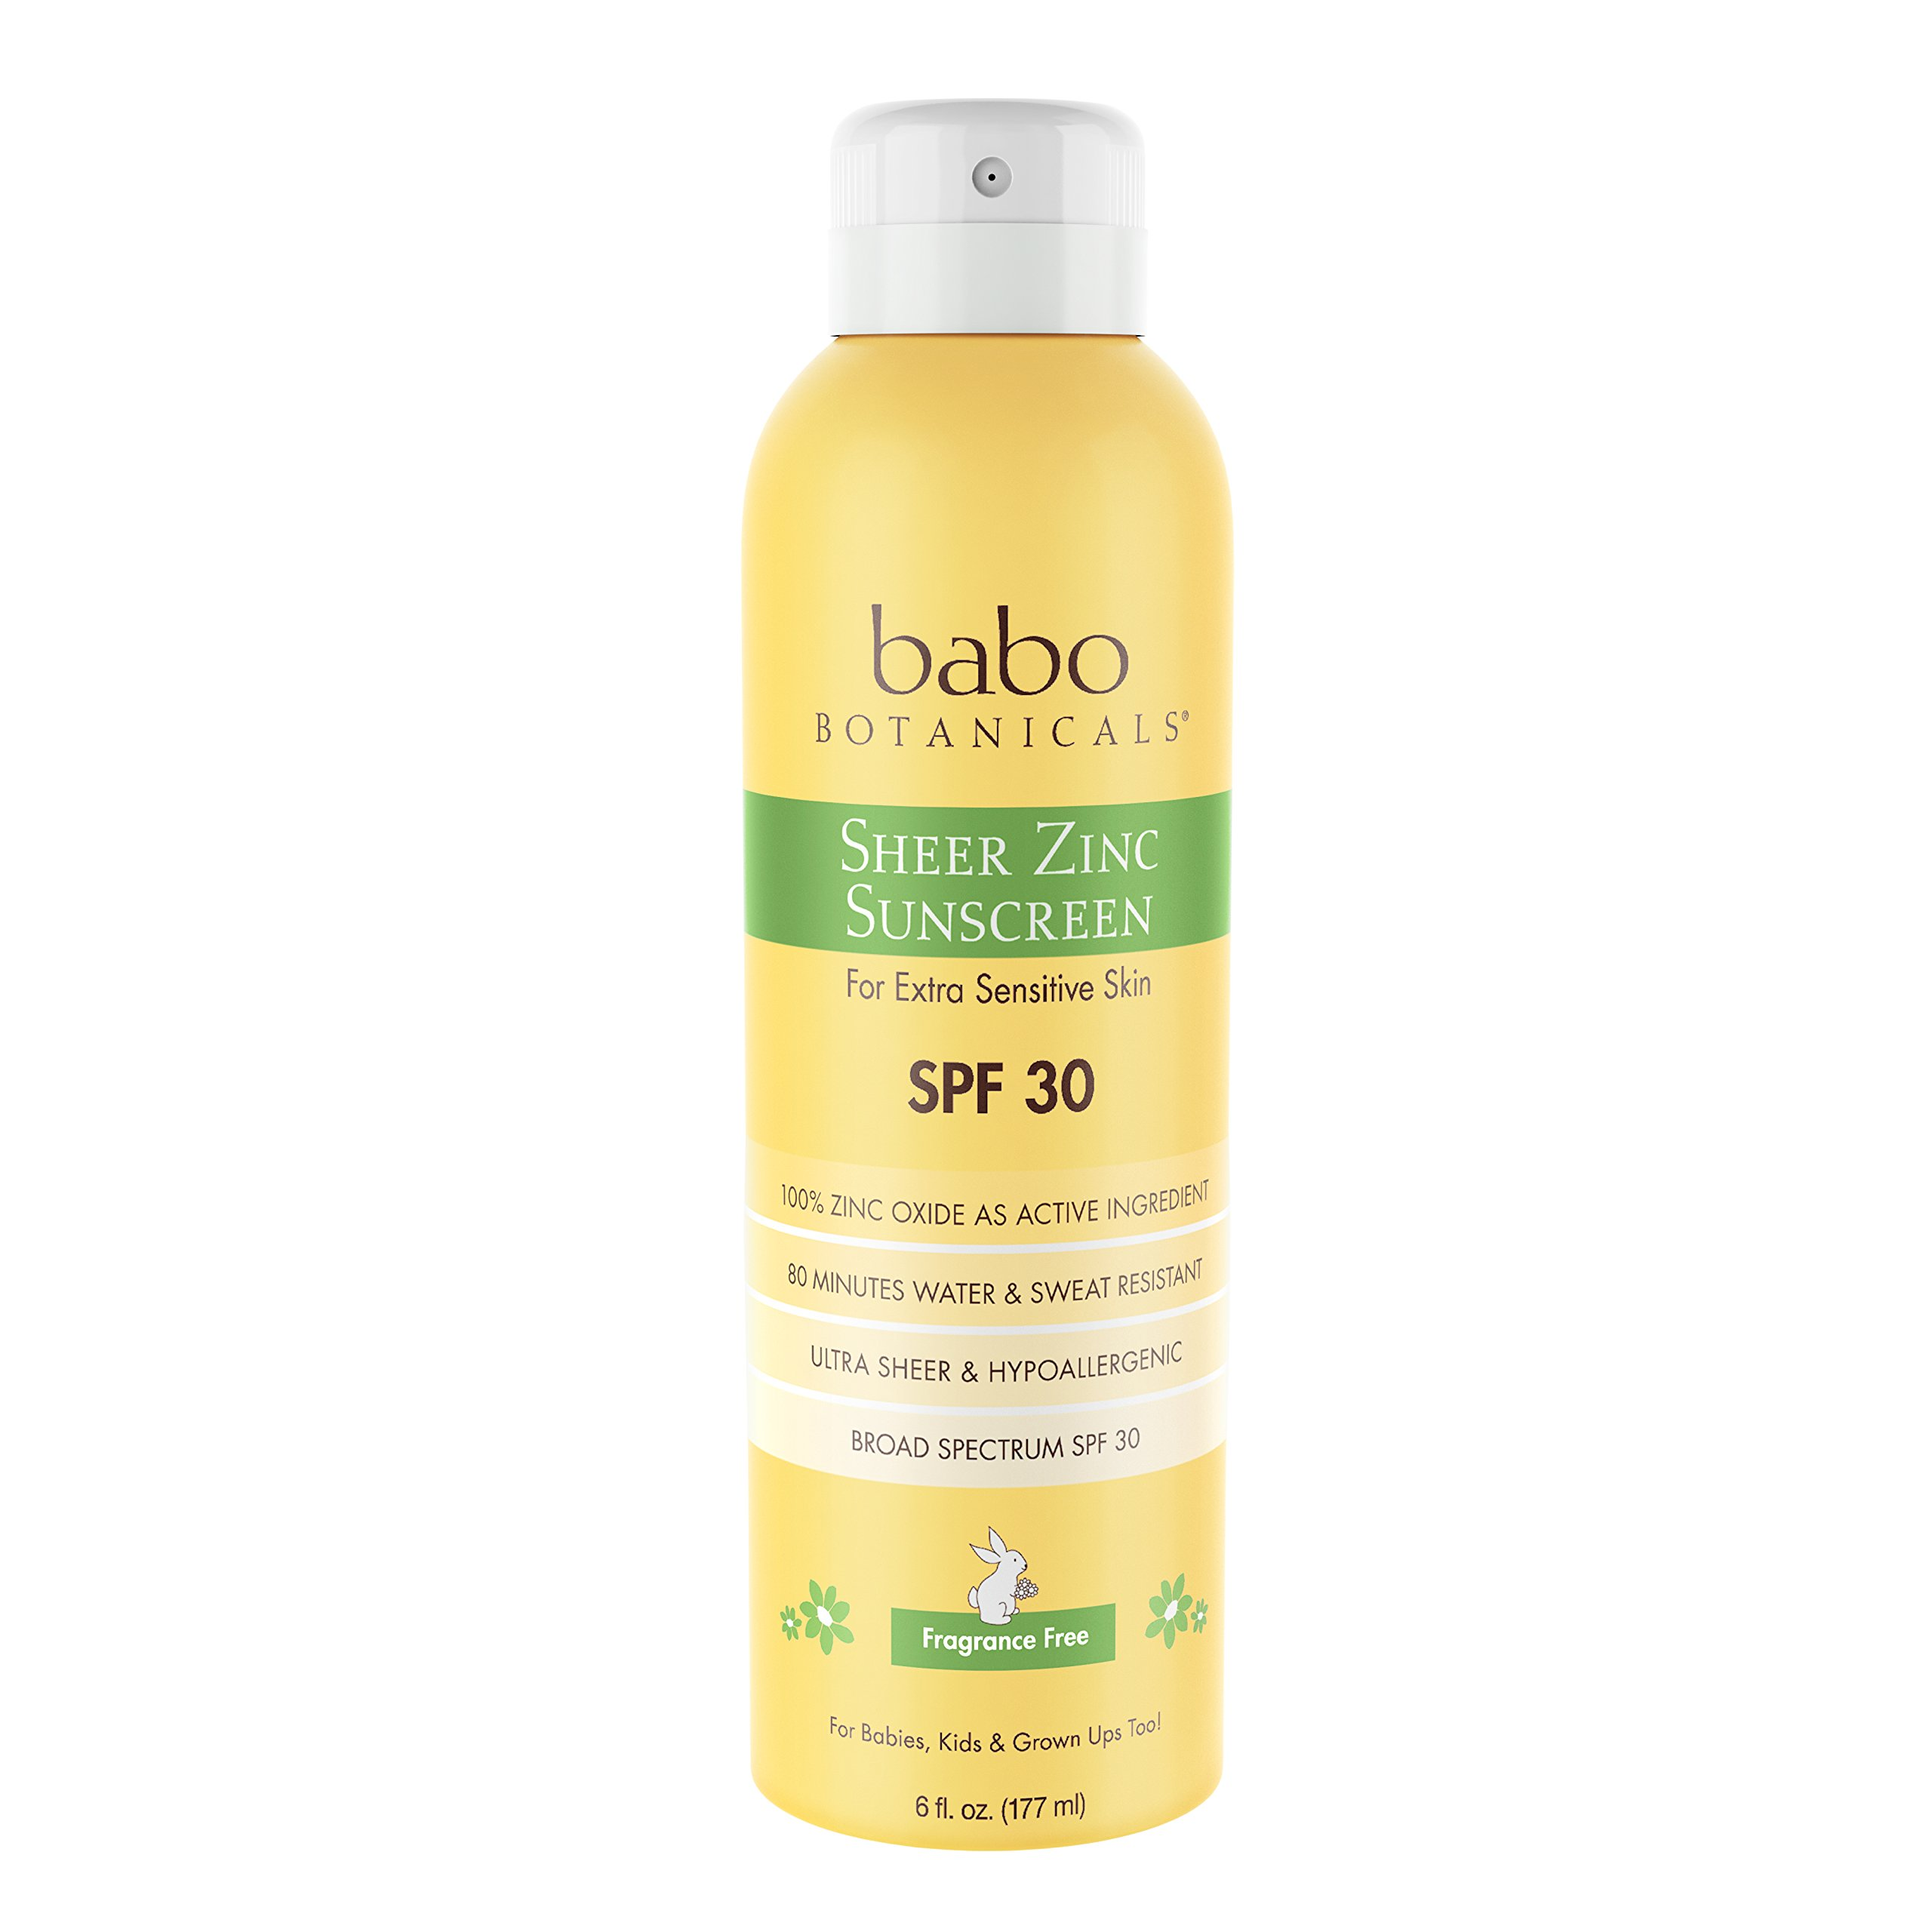 Babo Botanicals Sheer Zinc SPF 30 Natural Continuous Spray Fragrance Free Sunscreen for Sensitive Skin, Yellow by Babo Botanicals